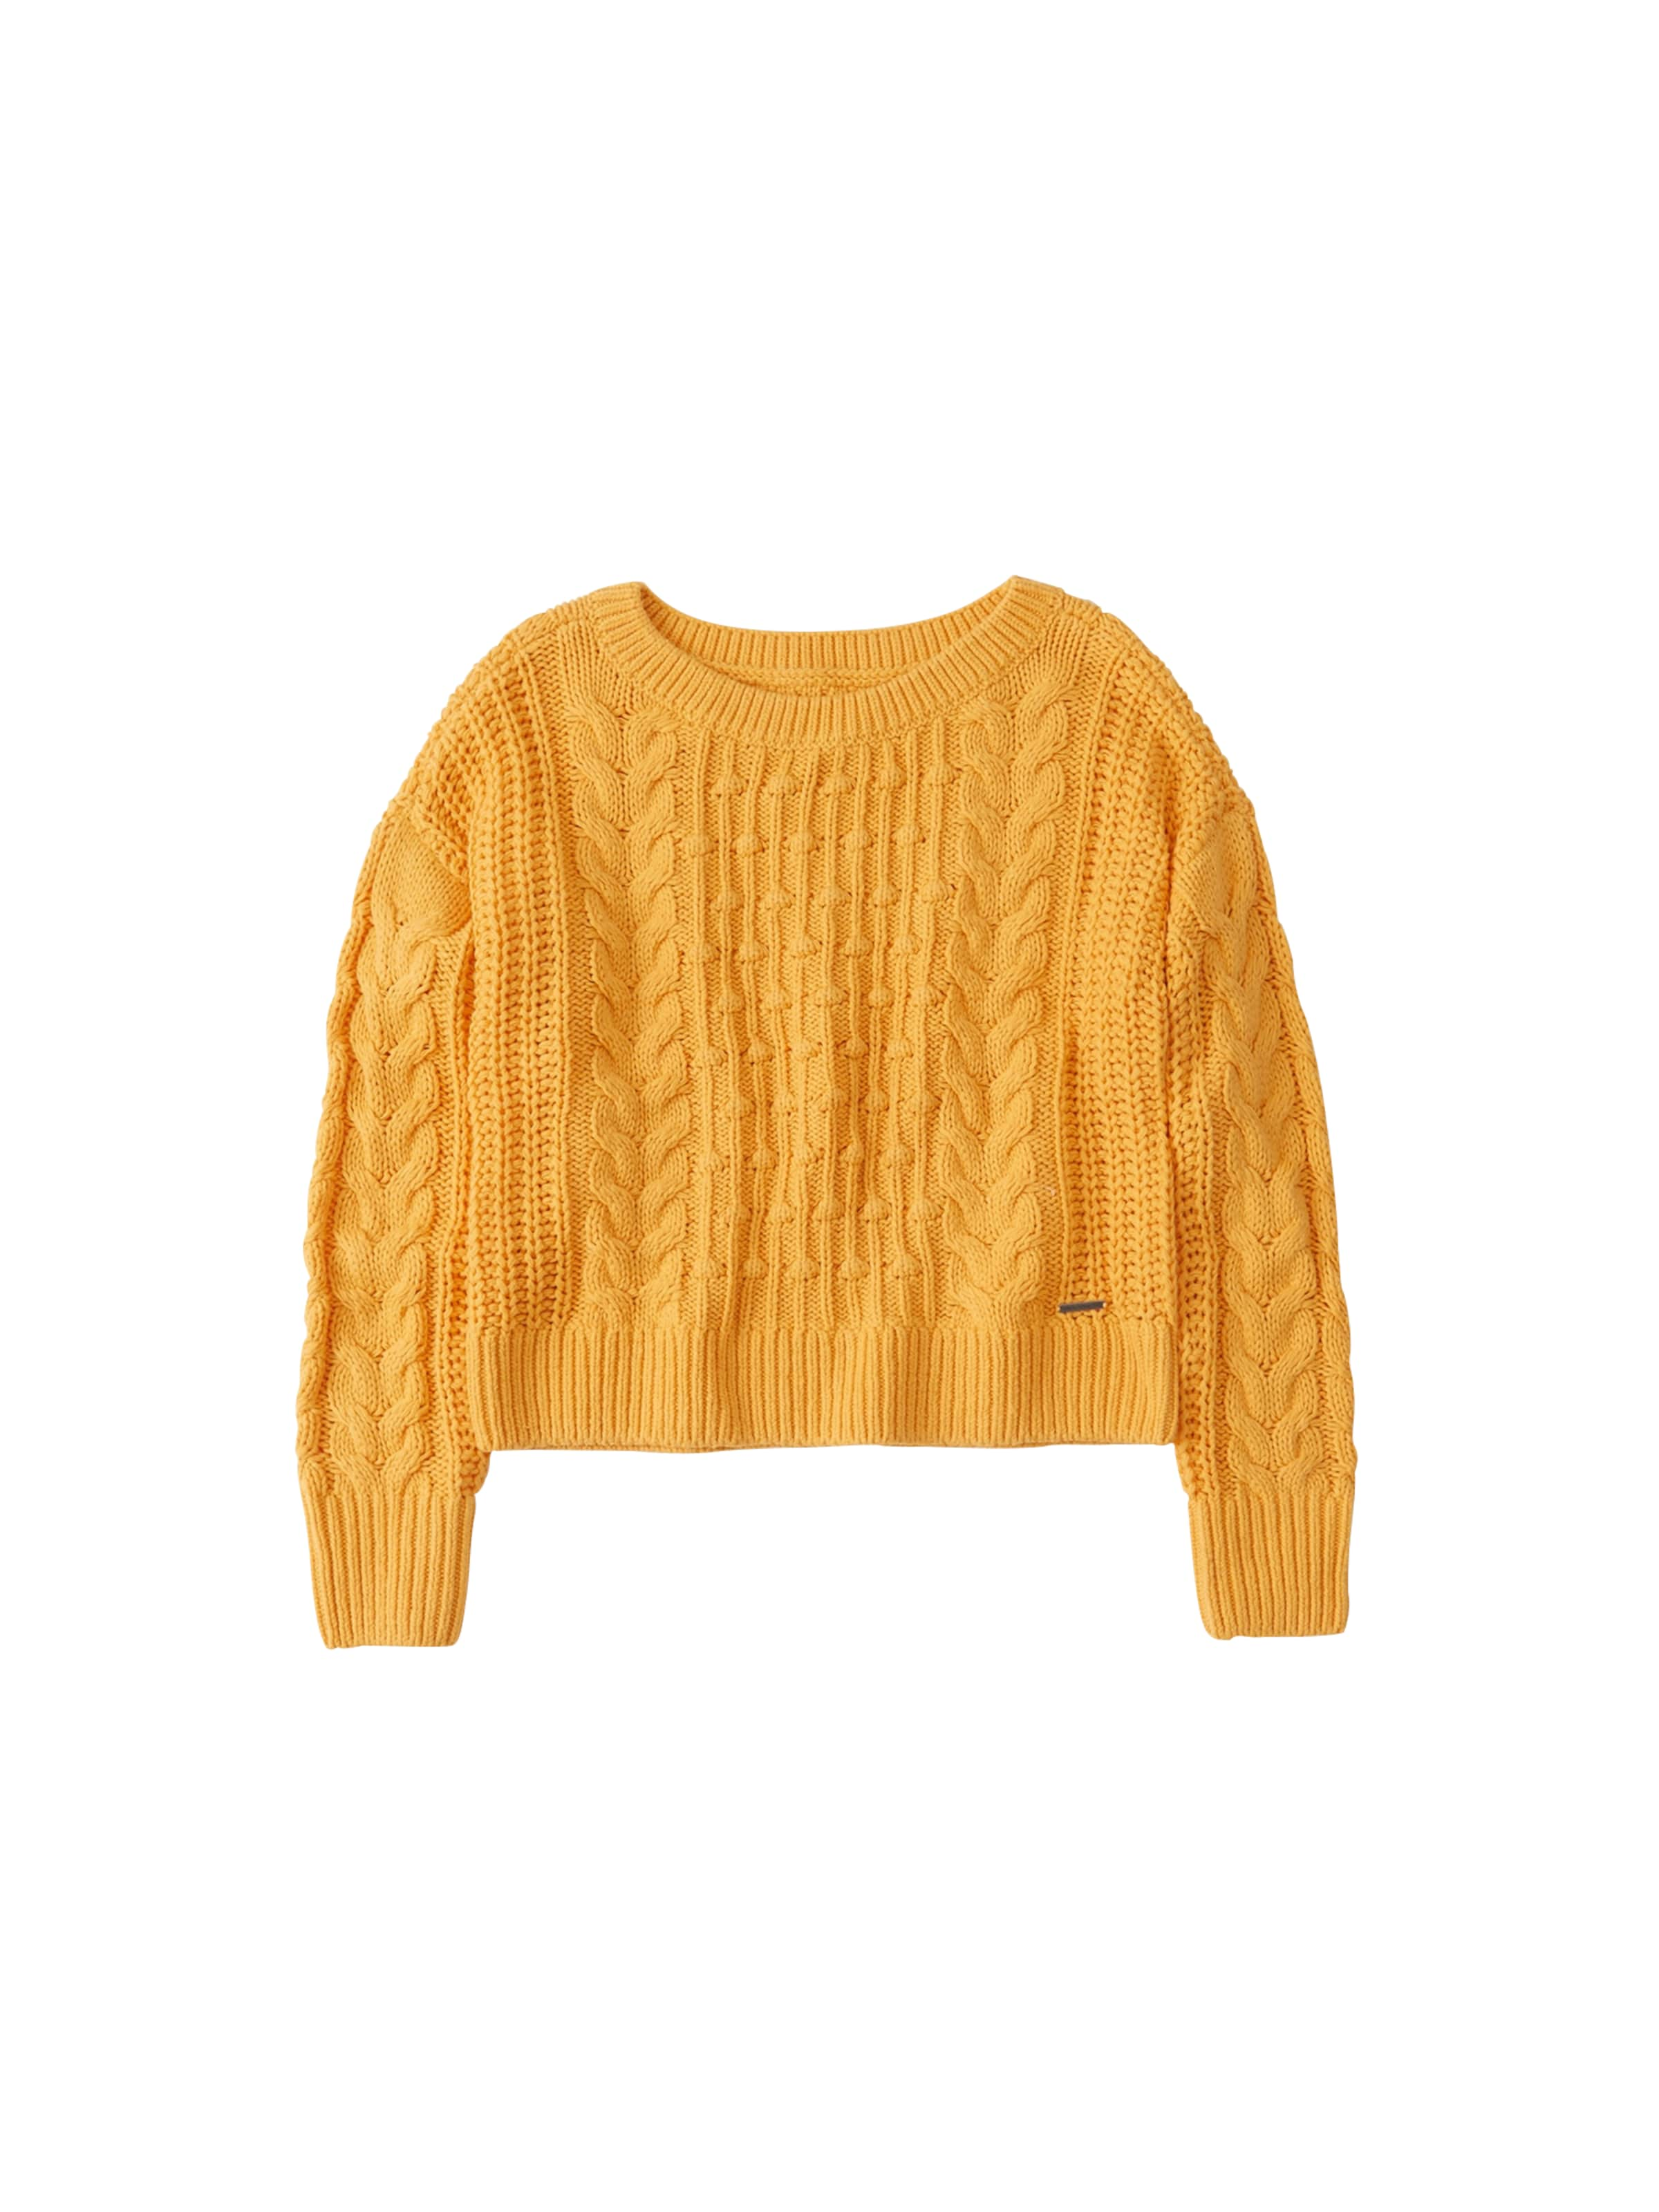 Jaune Abercrombieamp; En over Pull Fitch Nwm80vn